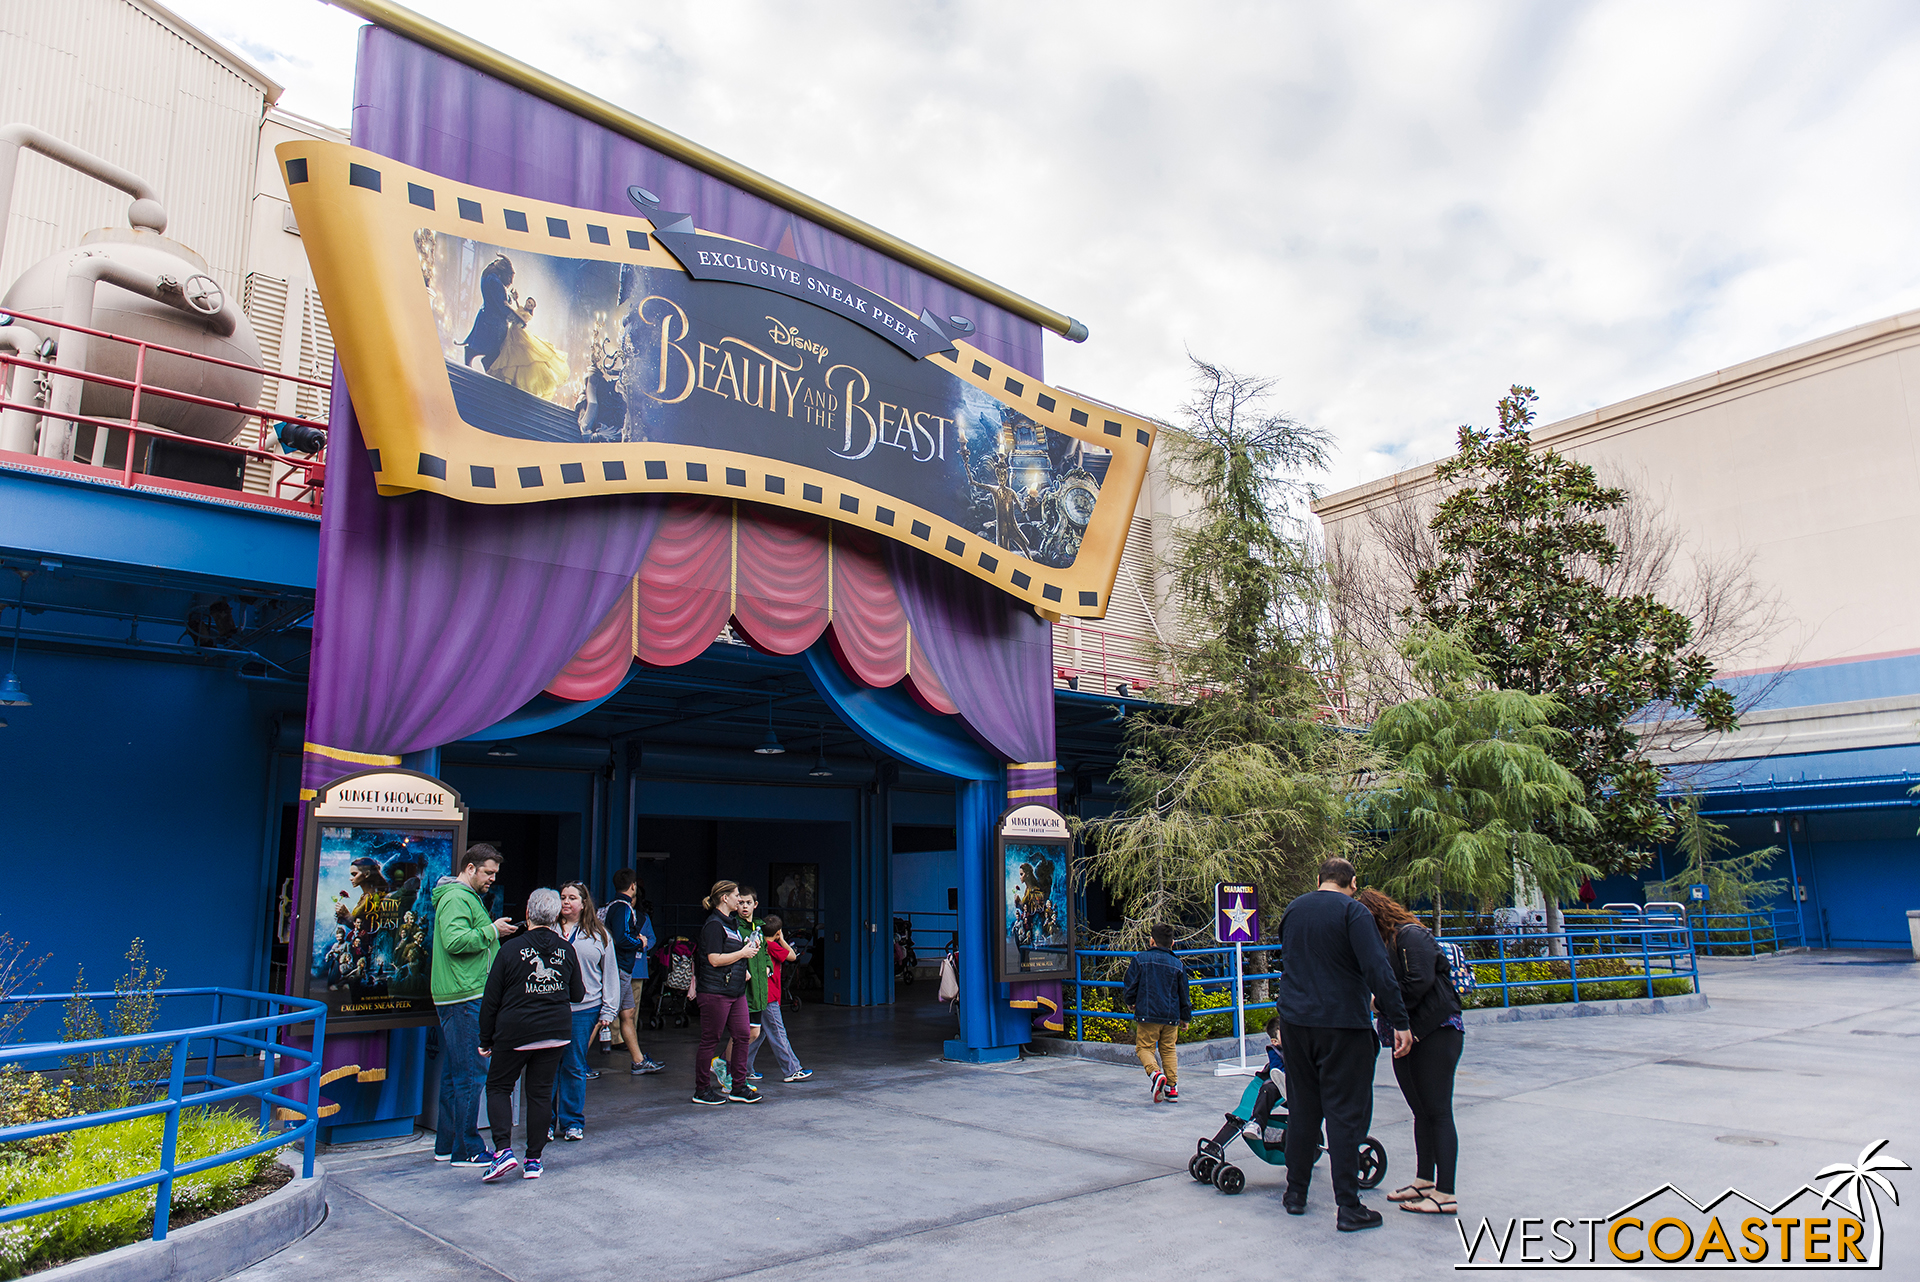 Also, you can get an extended sneak preview of the new, upcoming, live-action  Beauty and the Beast  movie at the old Muppetvision Theater in Hollywood Land, if you're so inclined.